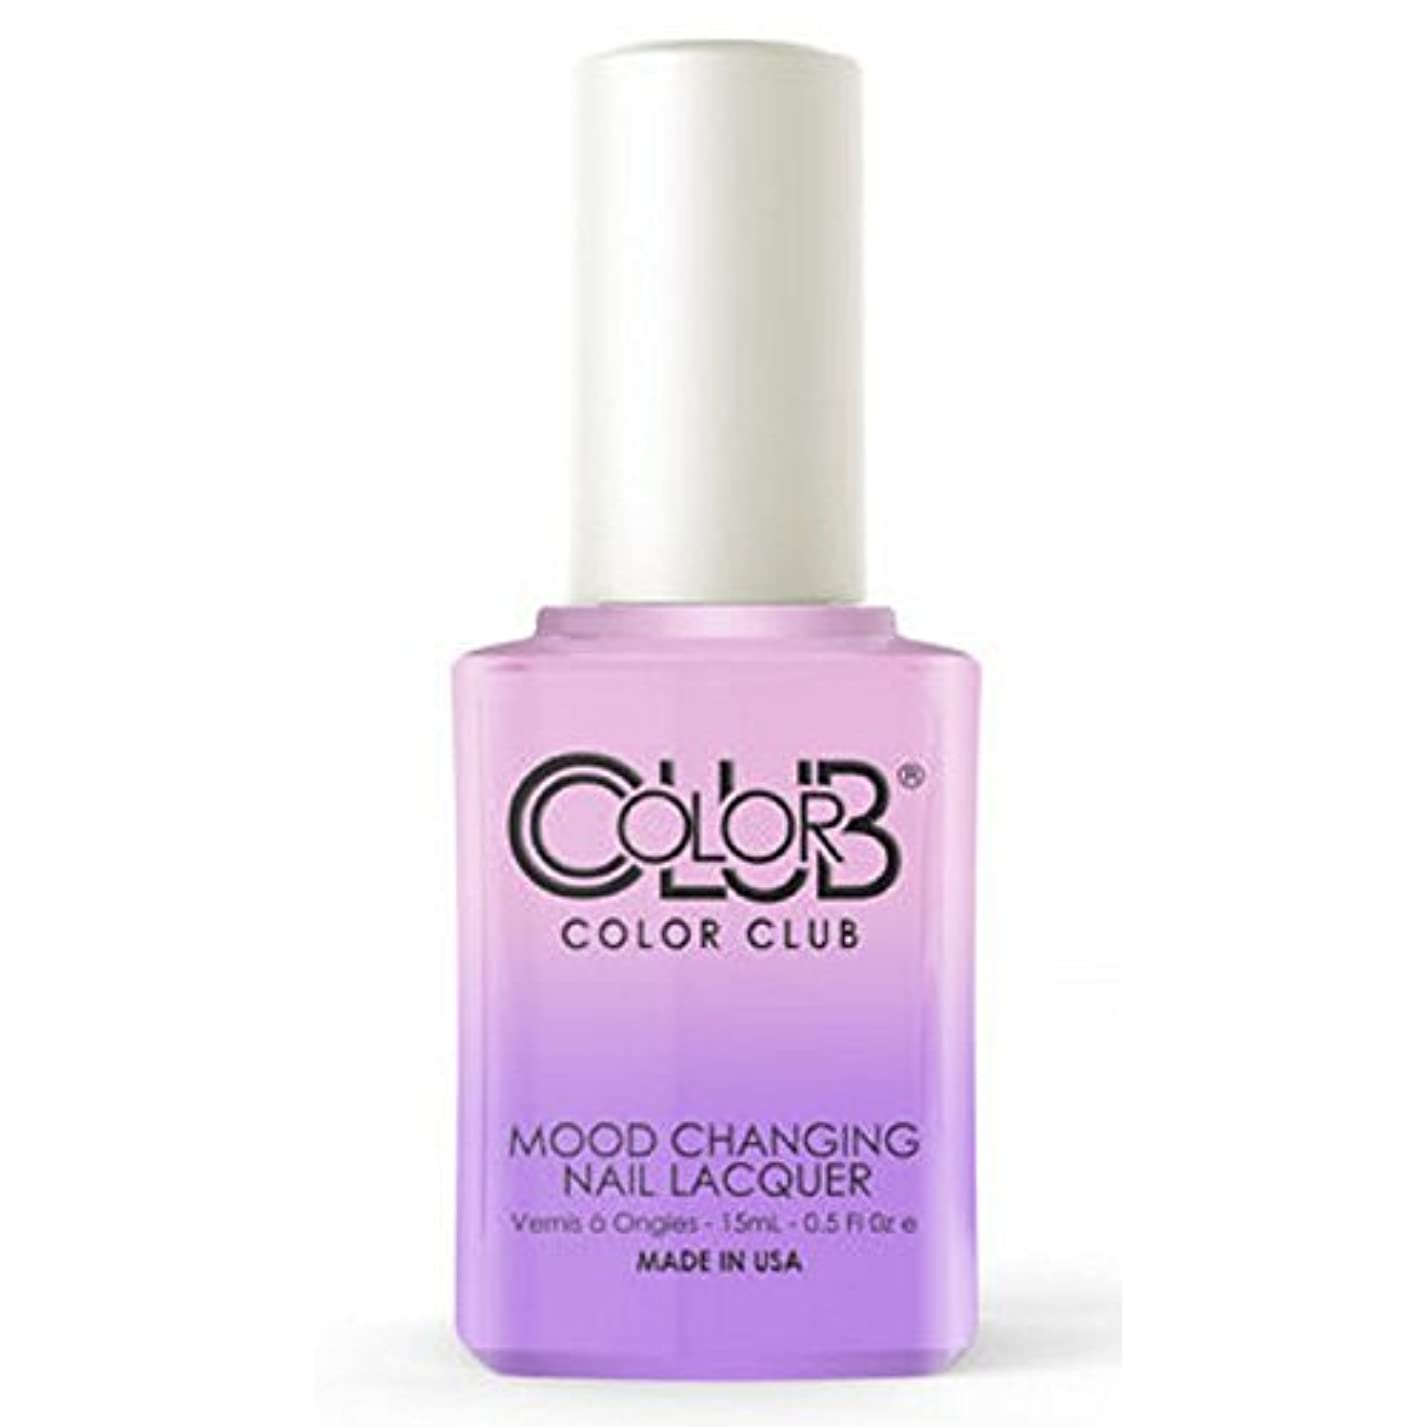 マッサージ突撃心理的にColor Club Mood Changing Nail Lacquer - Go with the Flow- 15 mL / 0.5 fl oz